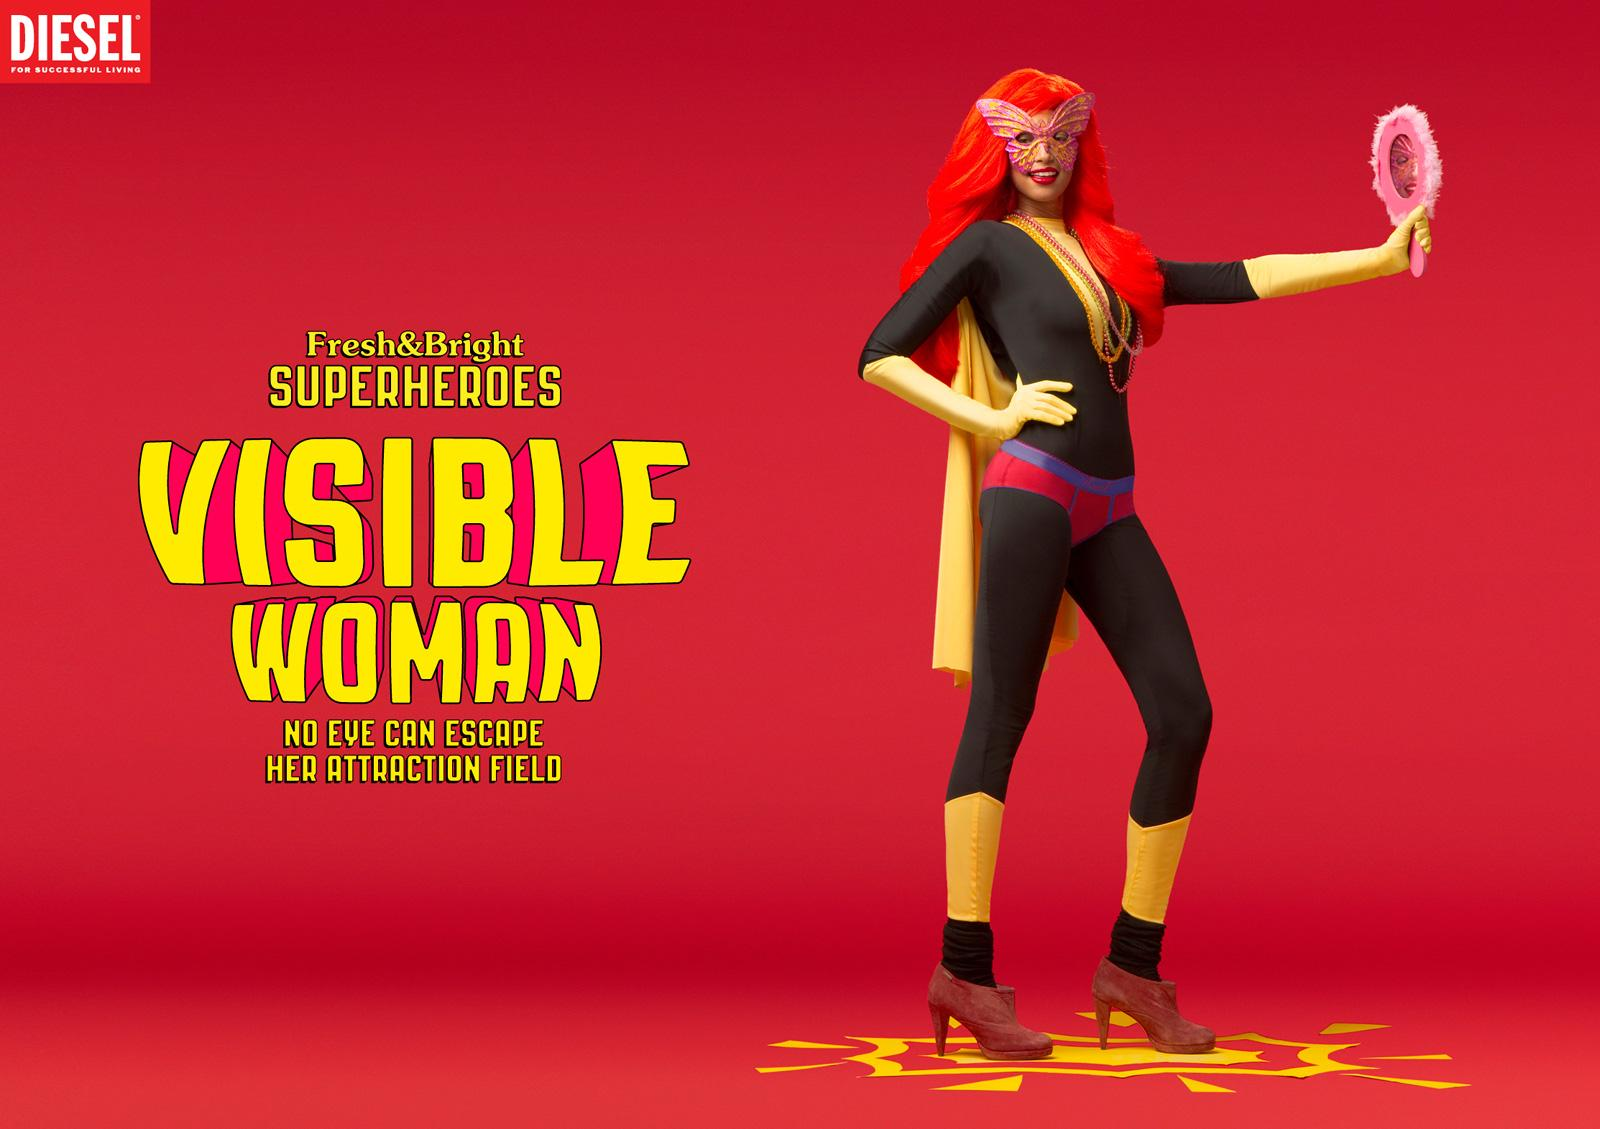 Diesel Print Ad -  Fresh & Bright Superheroes, Visible woman